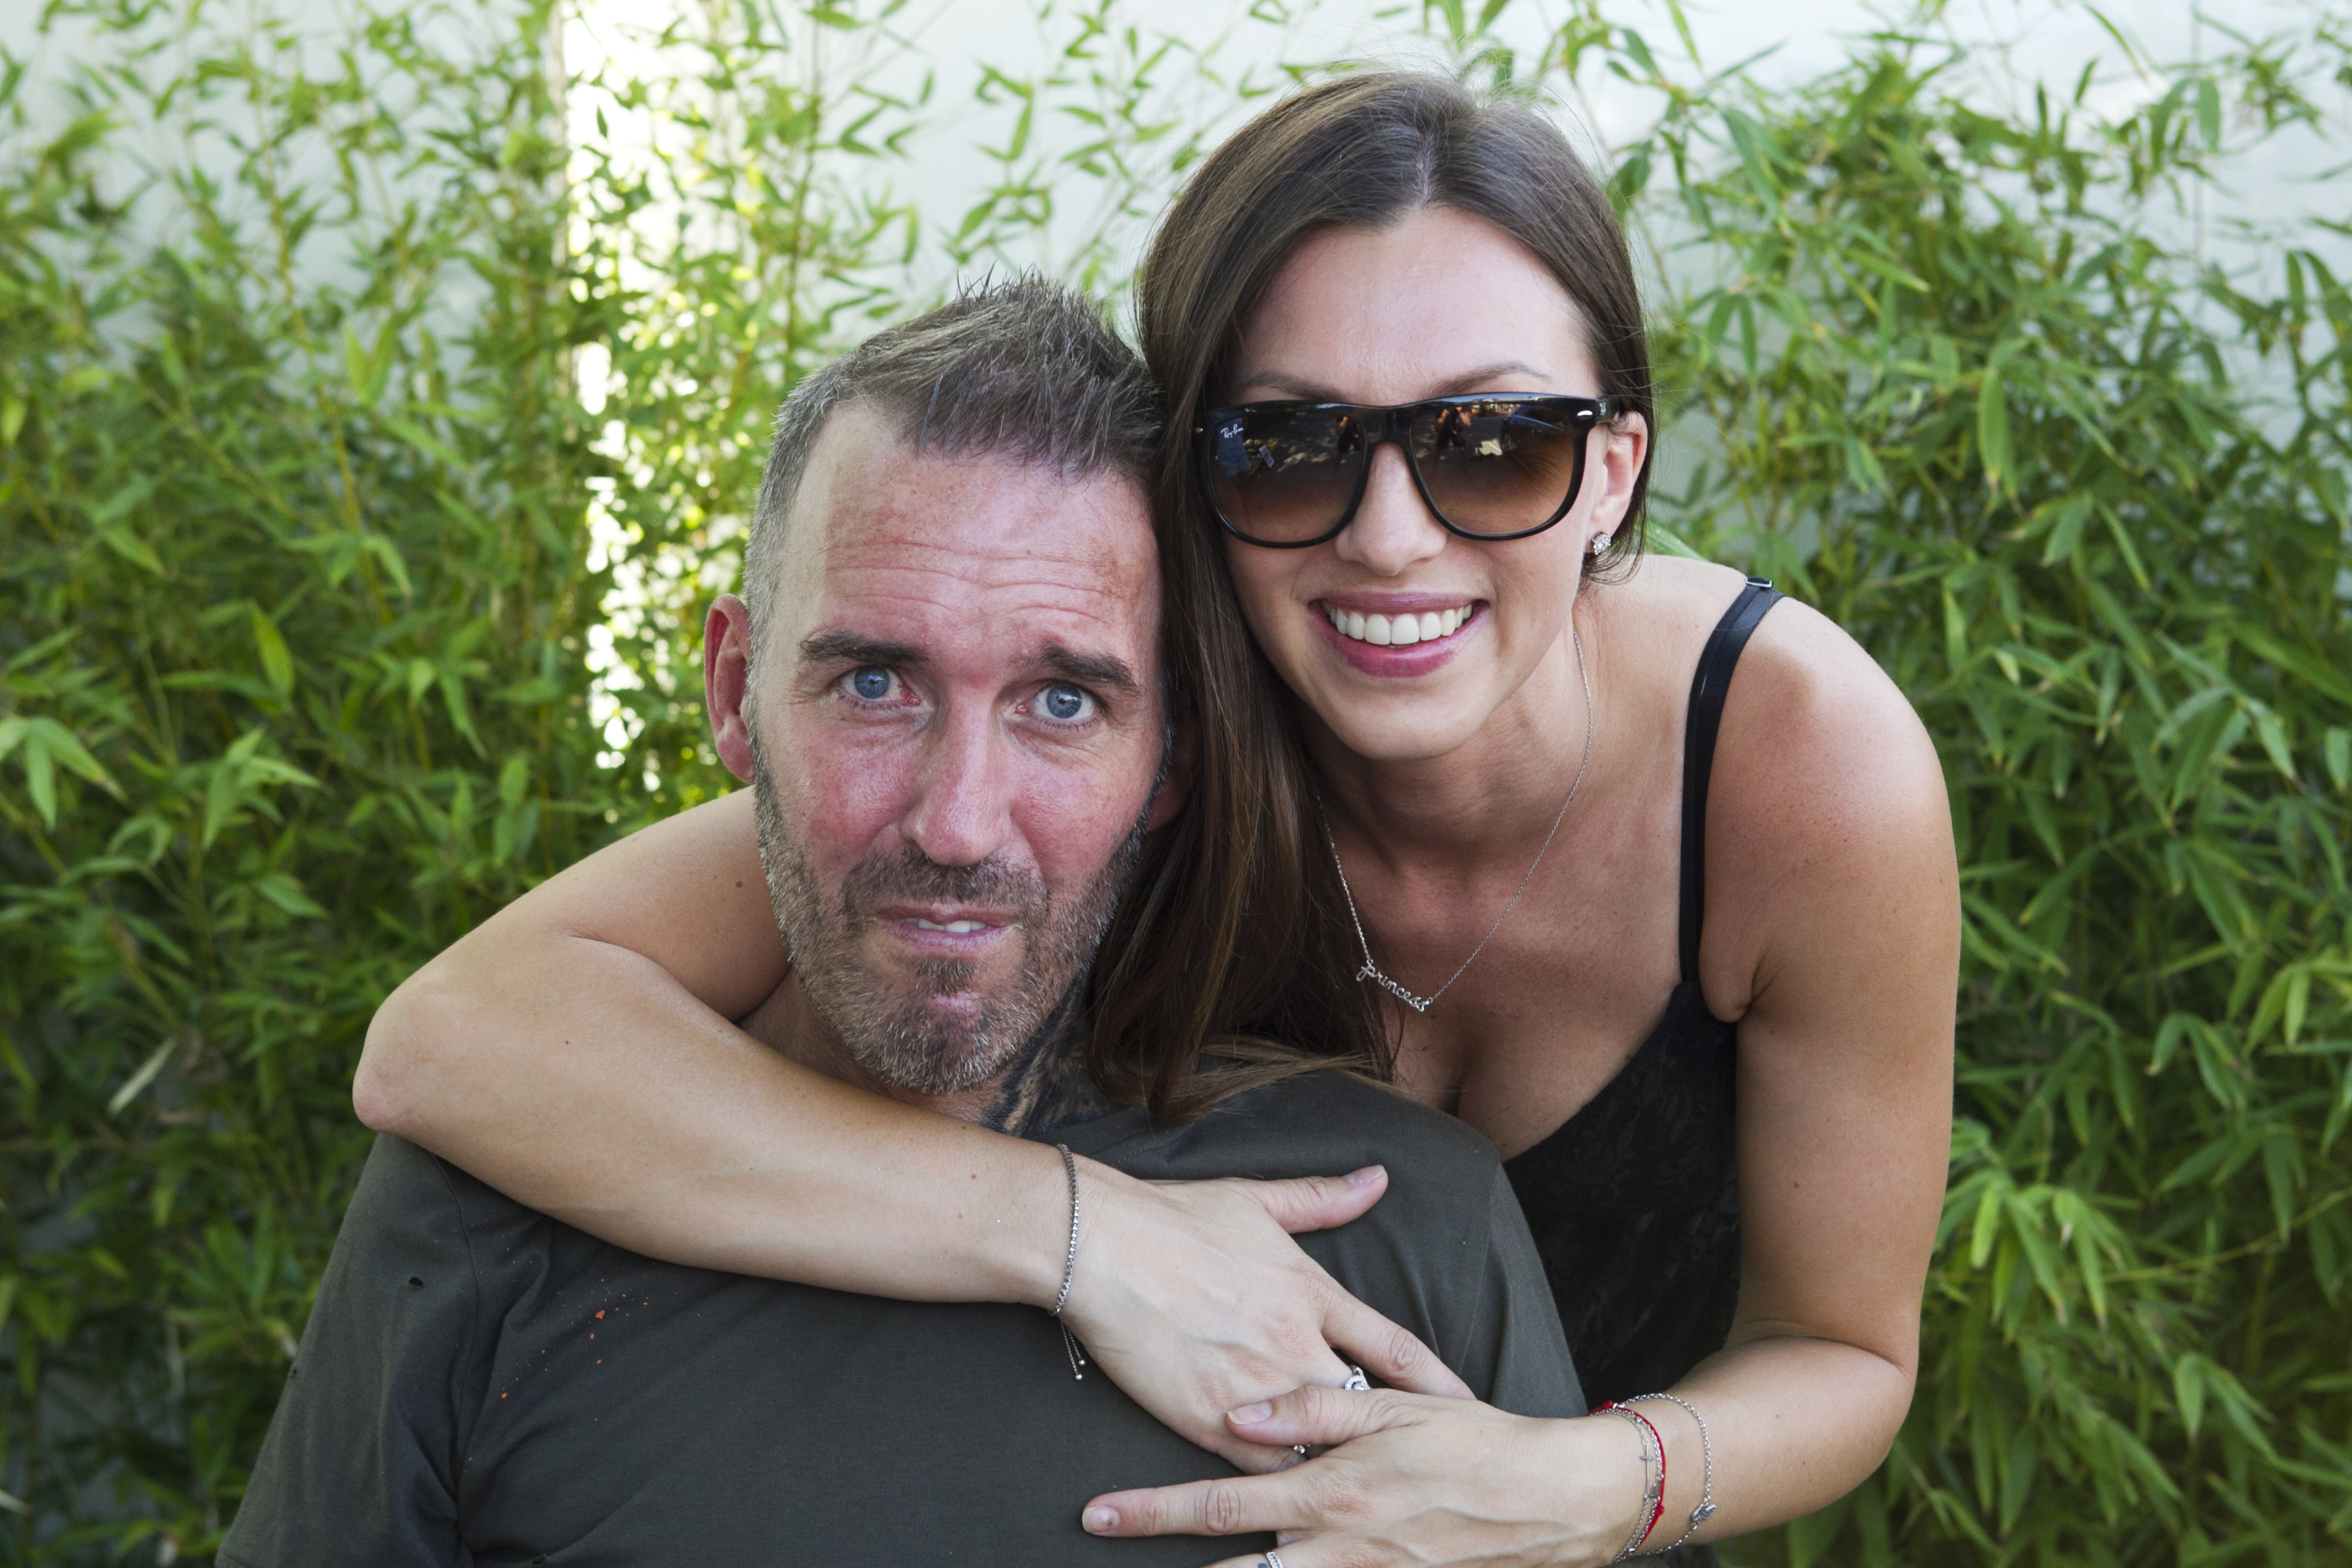 Former Rangers player, Fernando Ricksen (who has MND), with his wife Veronica, being presented with a birthday present from the Sunday Post, before he goes to his birthday party at the Ibrox Bar in Benidorm (Andrew Cawley, Sunday Post)